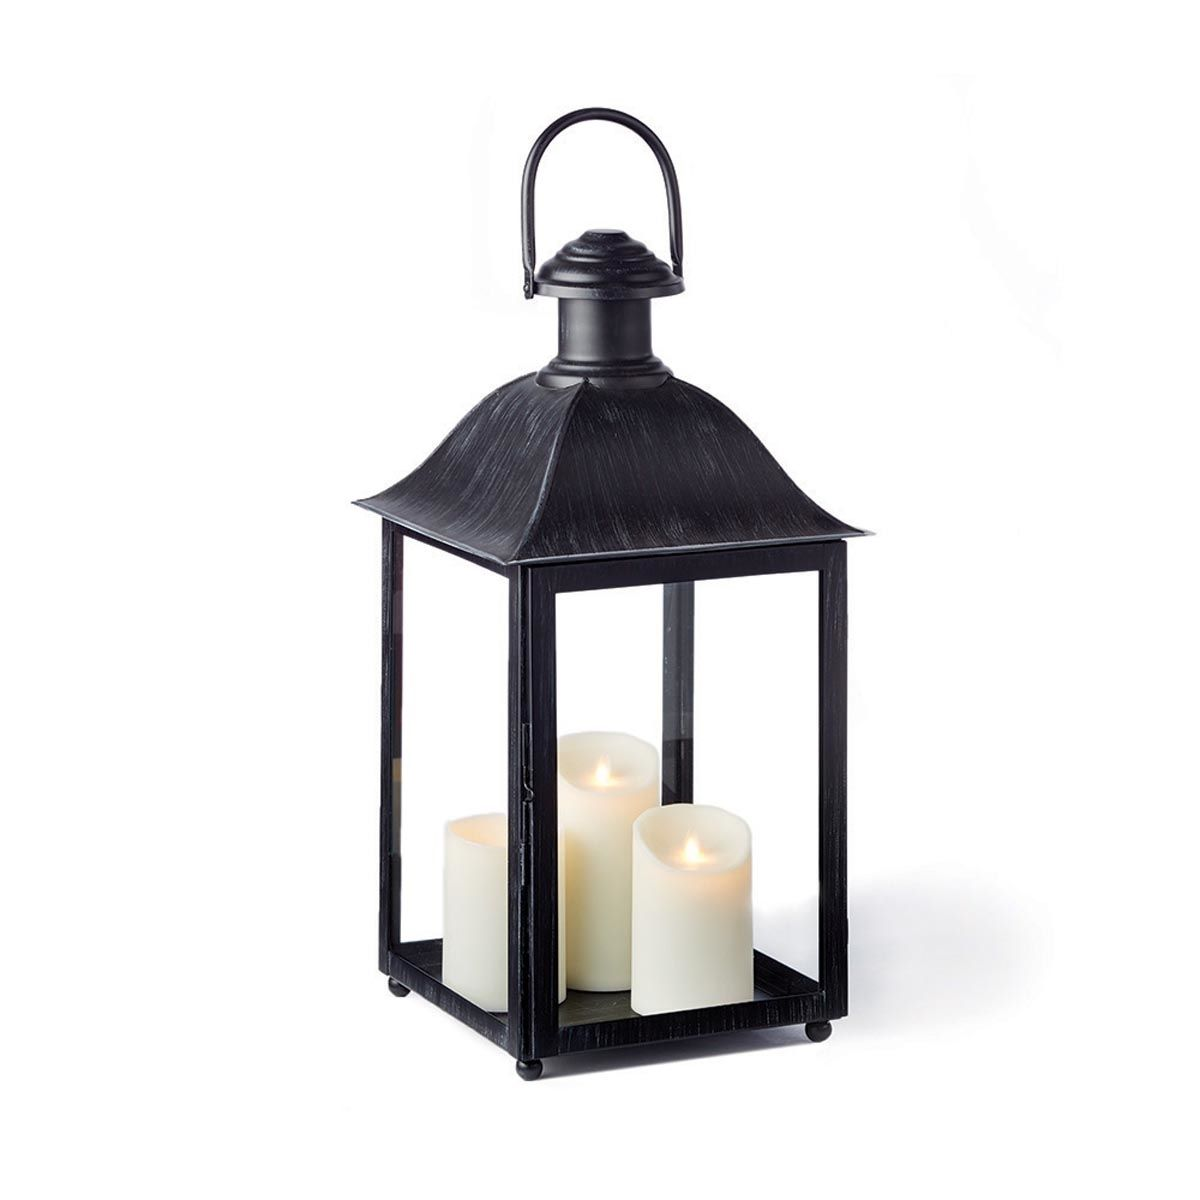 Coach House 23 Outdoor Lantern Black Plum Post